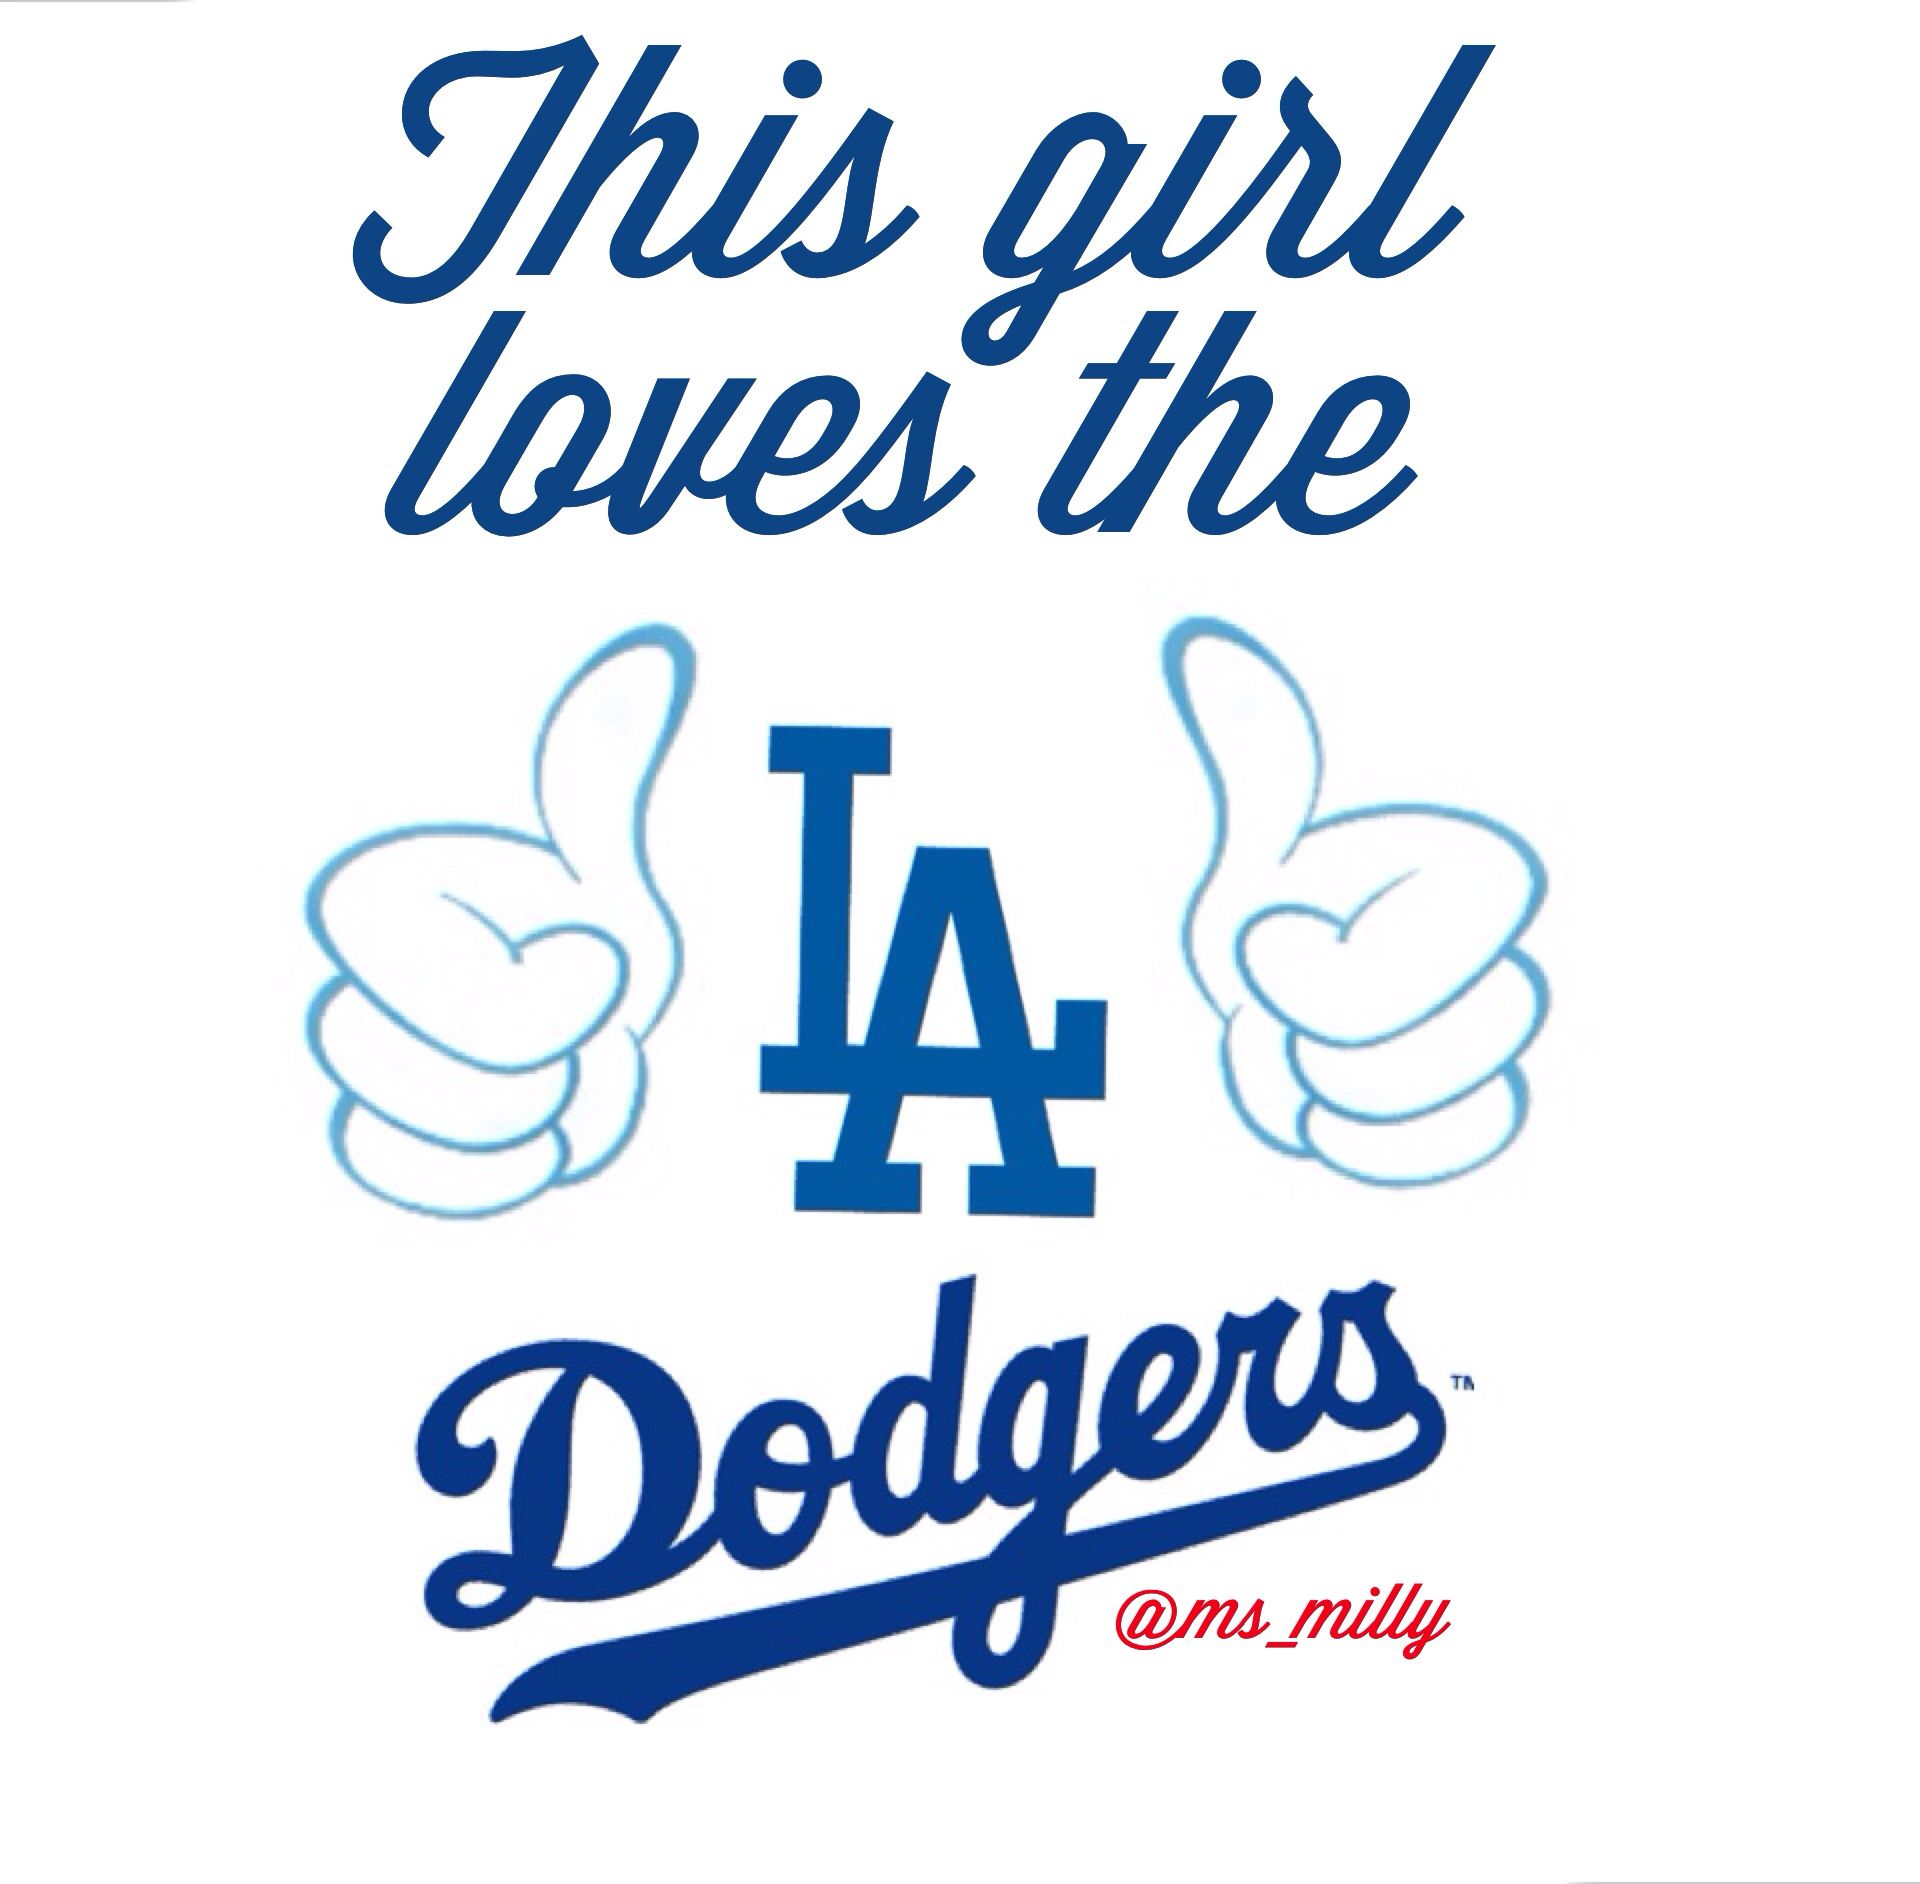 Dodgers dodgers fanatic pinterest dodgers dodgers girl and dodgers thecheapjerseys Choice Image